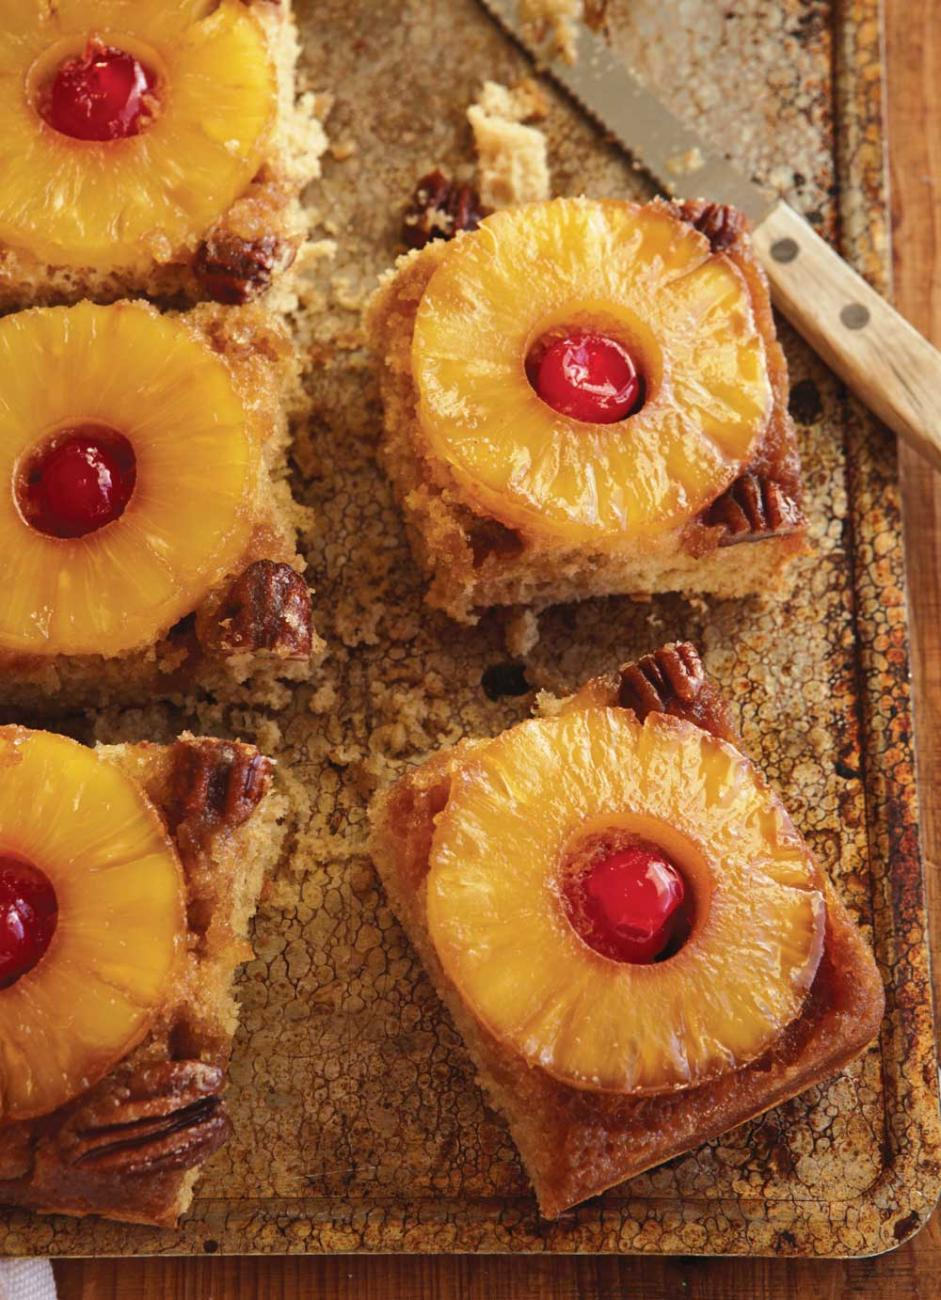 Recipe for Maple-Glazed Pineapple Upside Down Cake